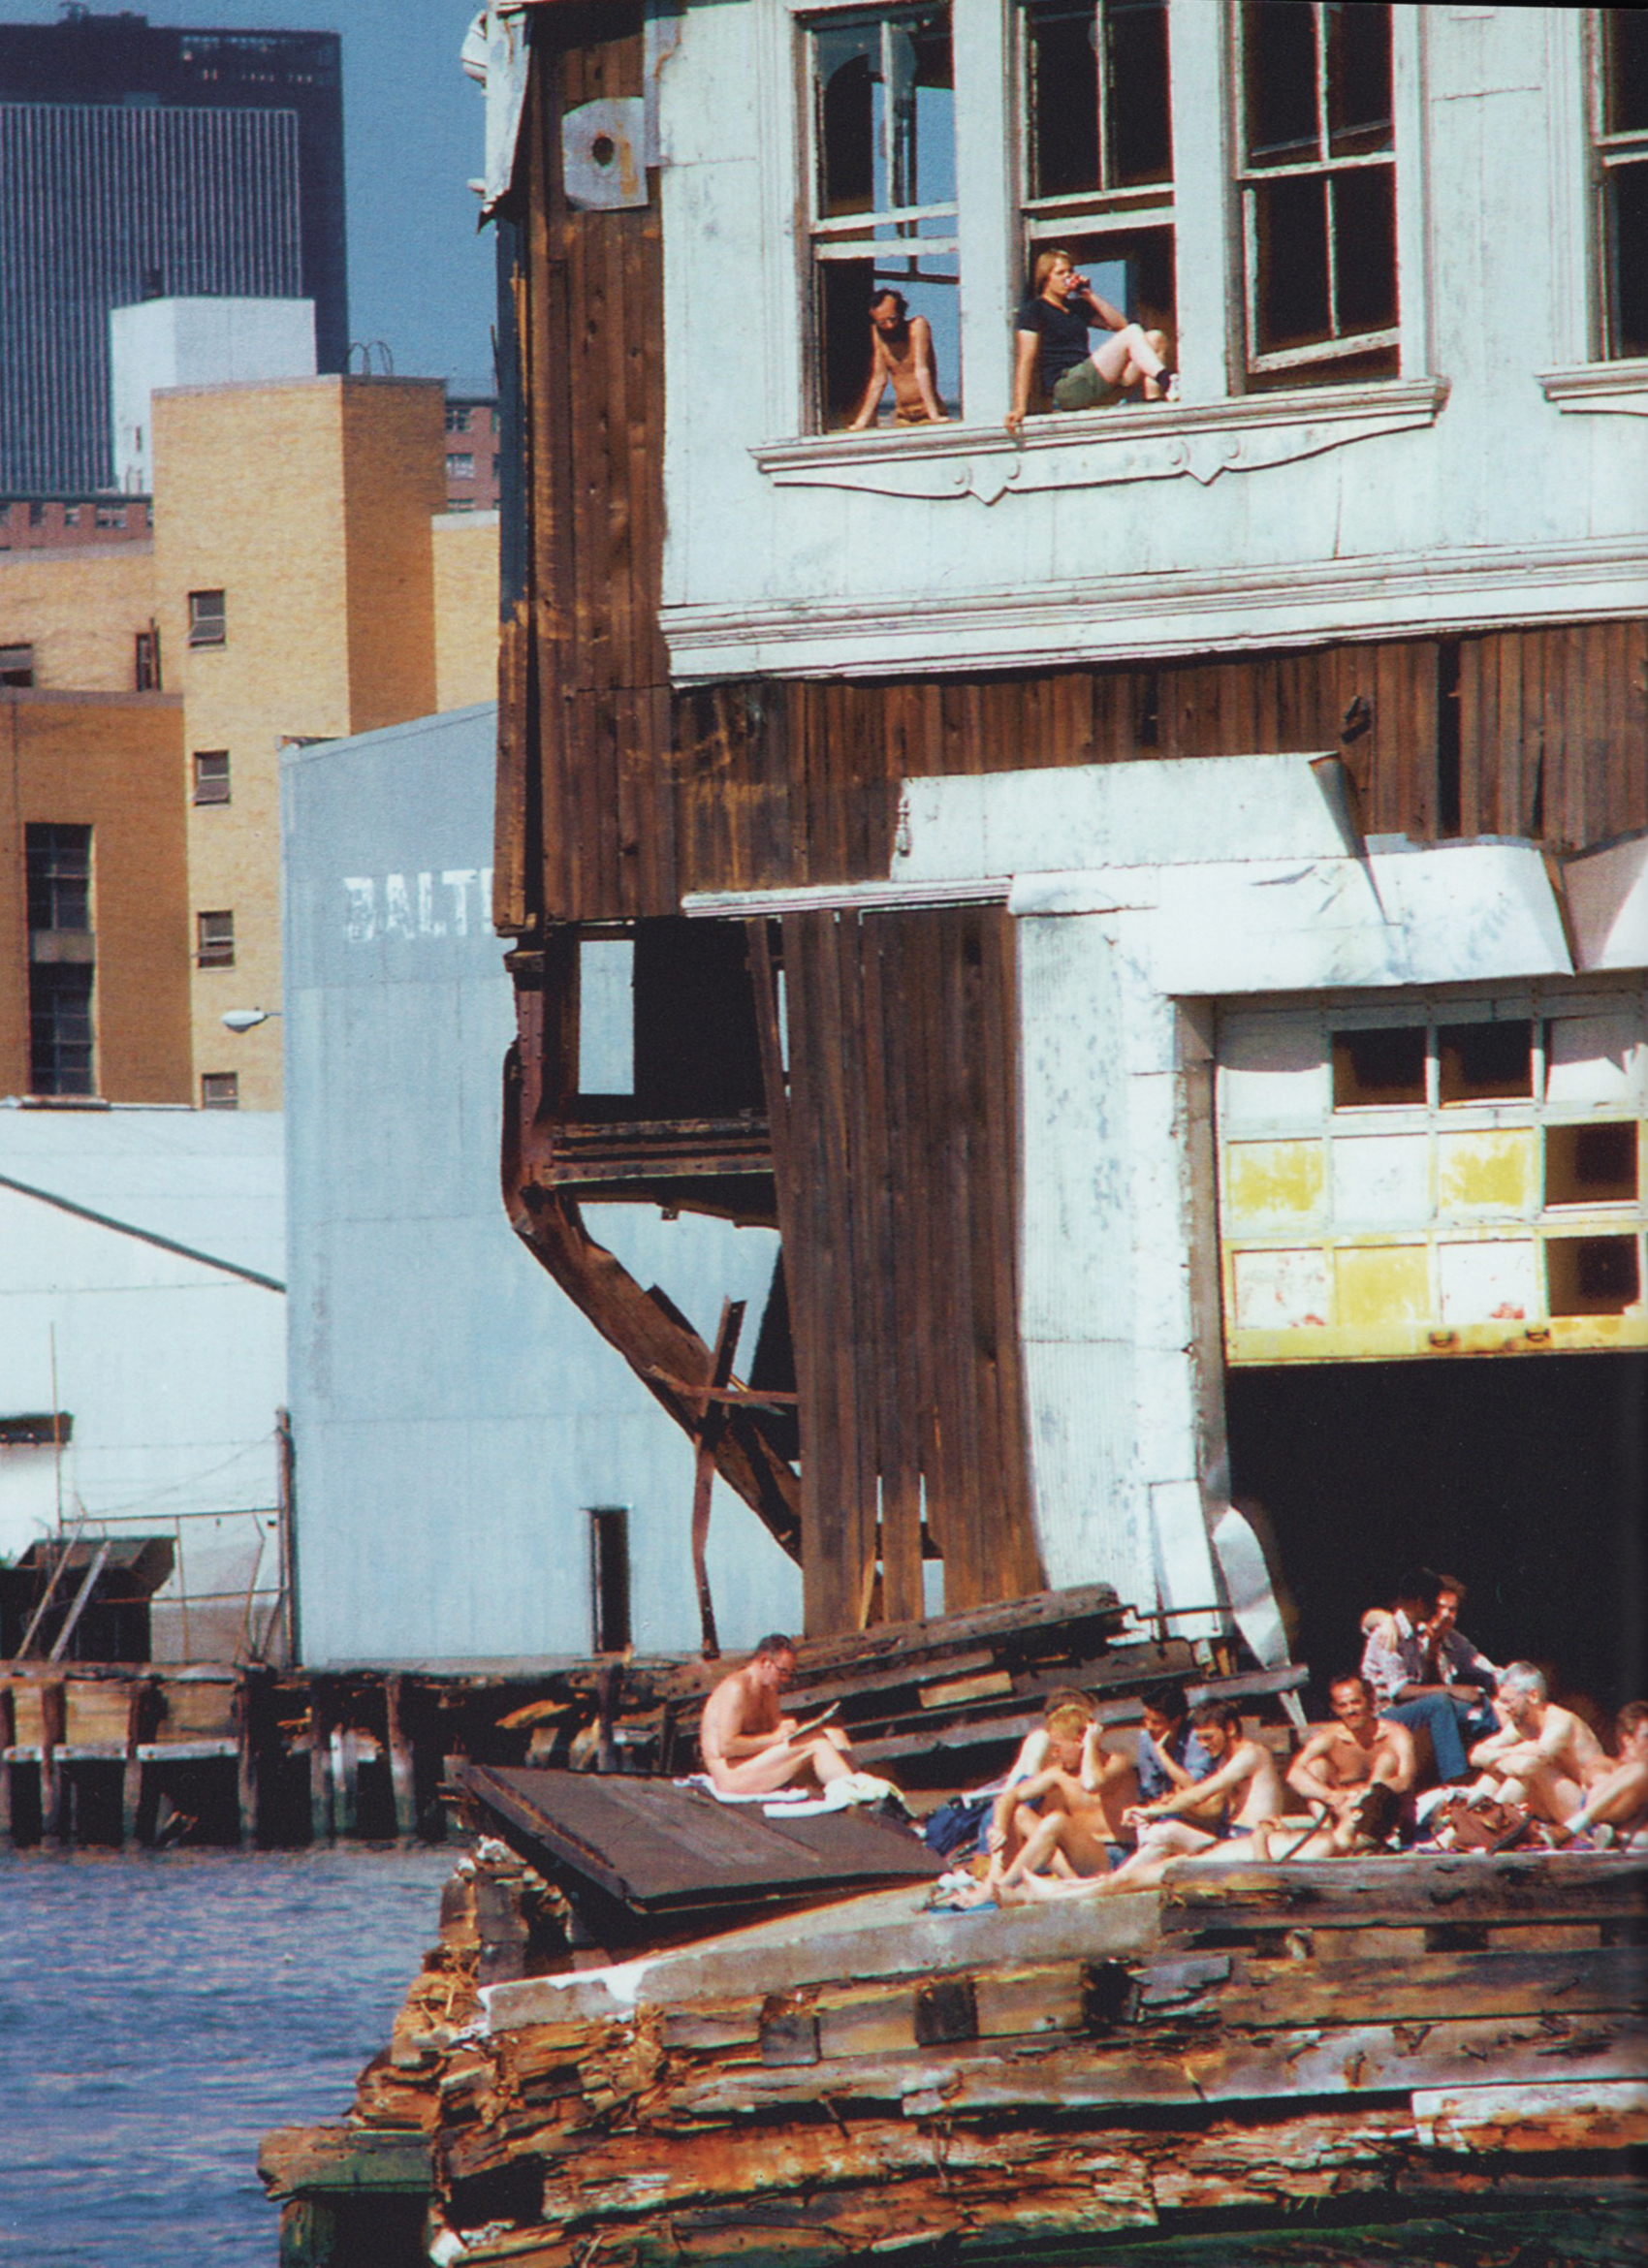 """Pier 51 """"Double Deck"""" / Shelley Seecomb 1978"""